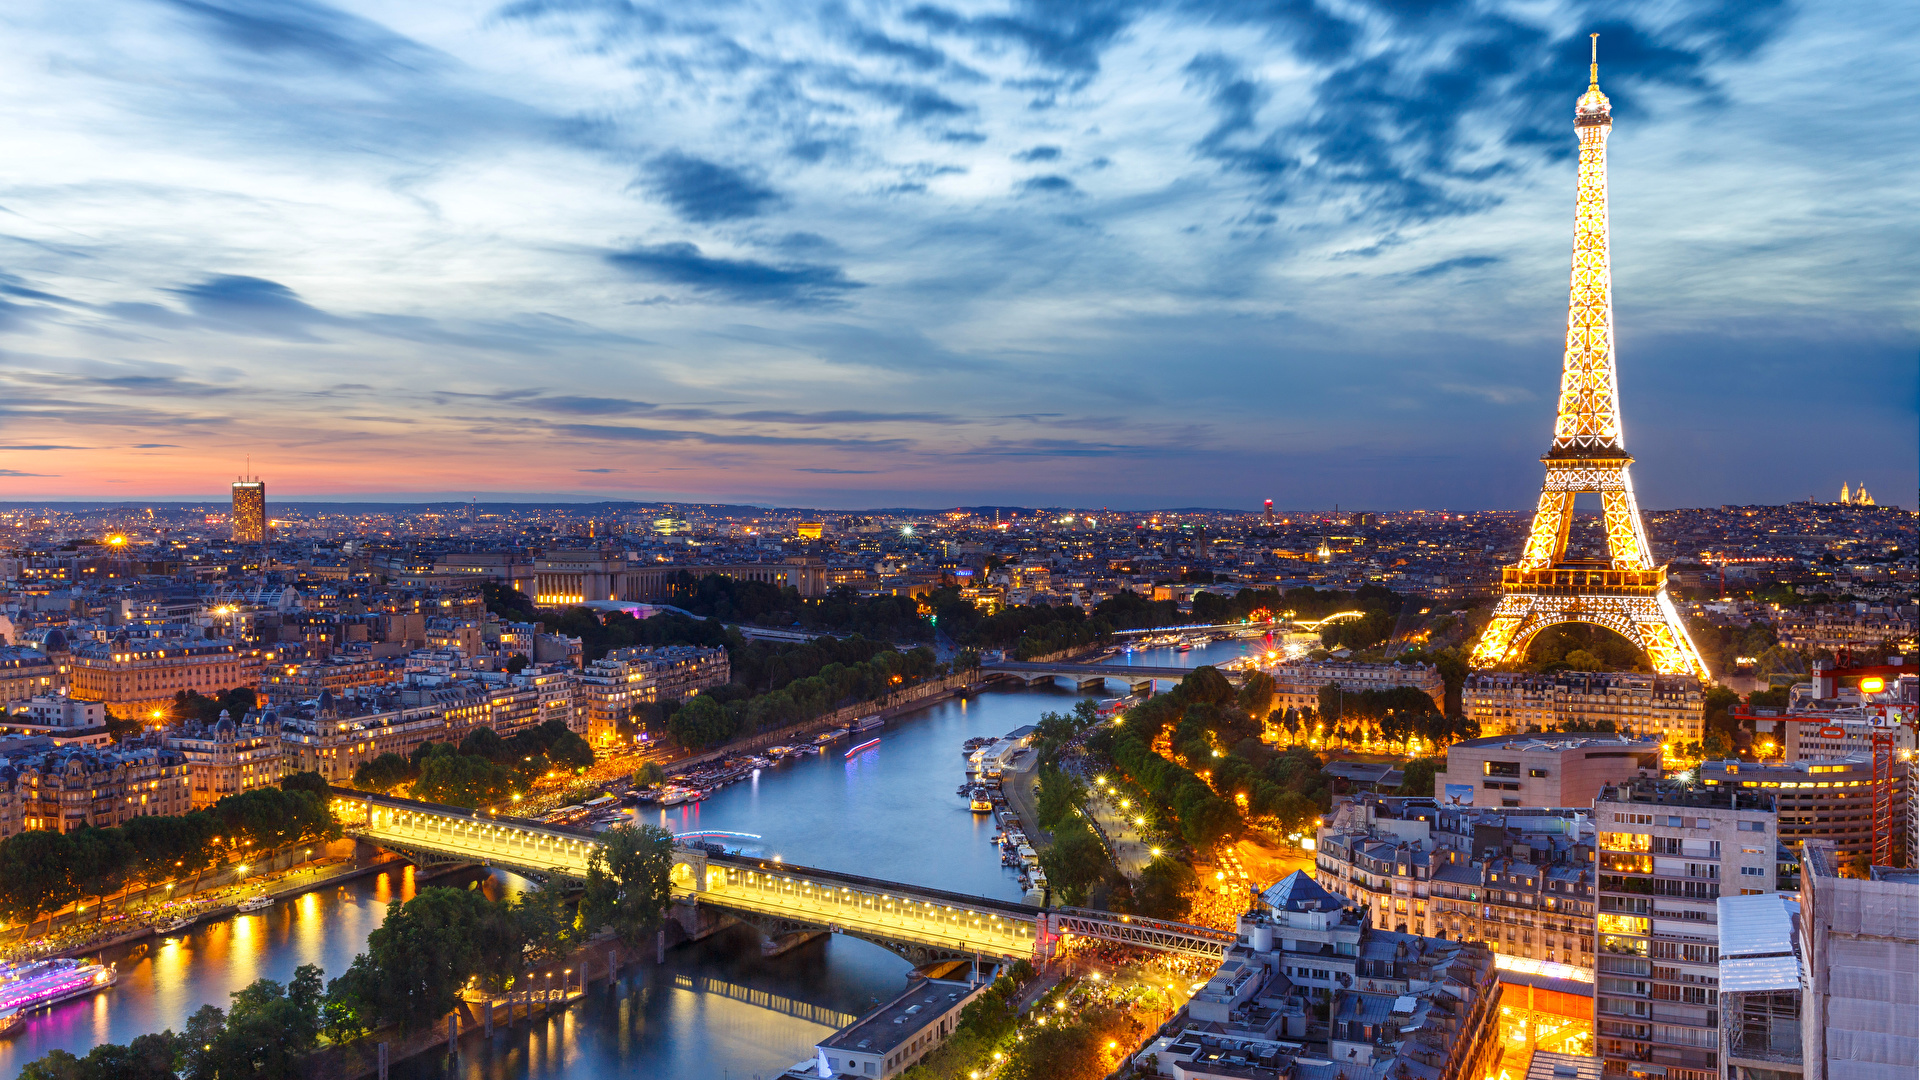 Apartments in Paris worth up to 1 million euros